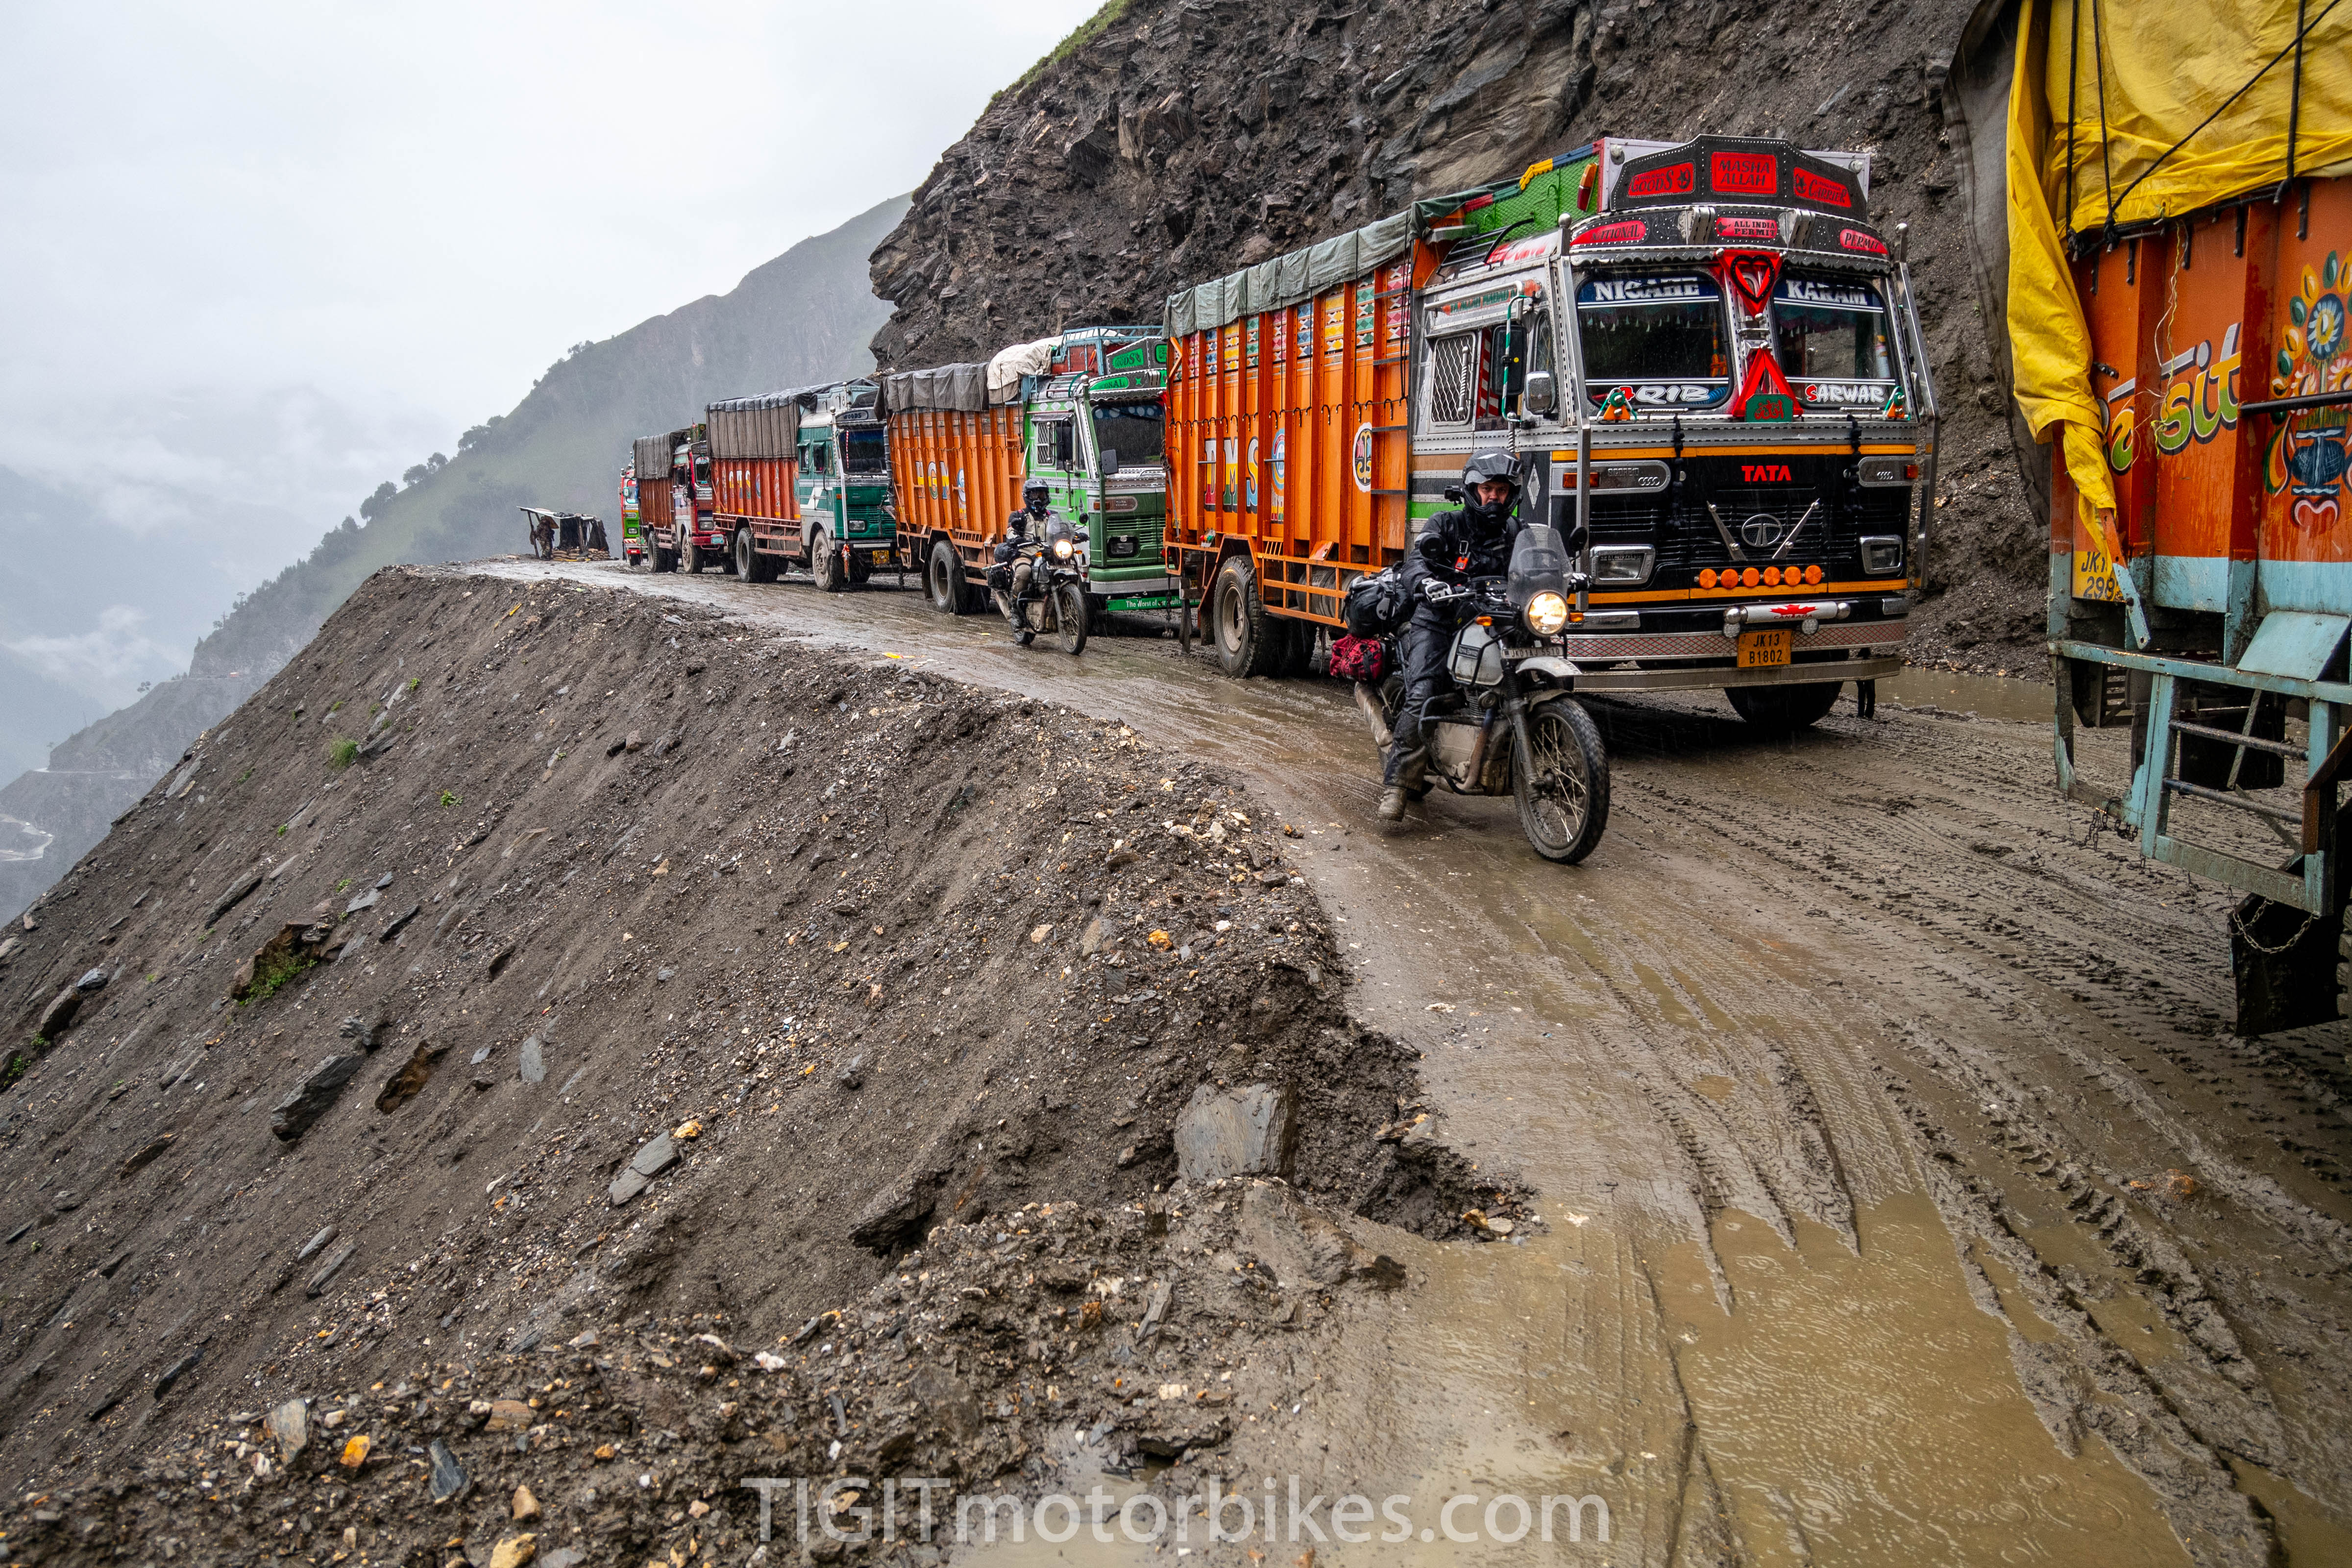 Himalayan Roads are crazy